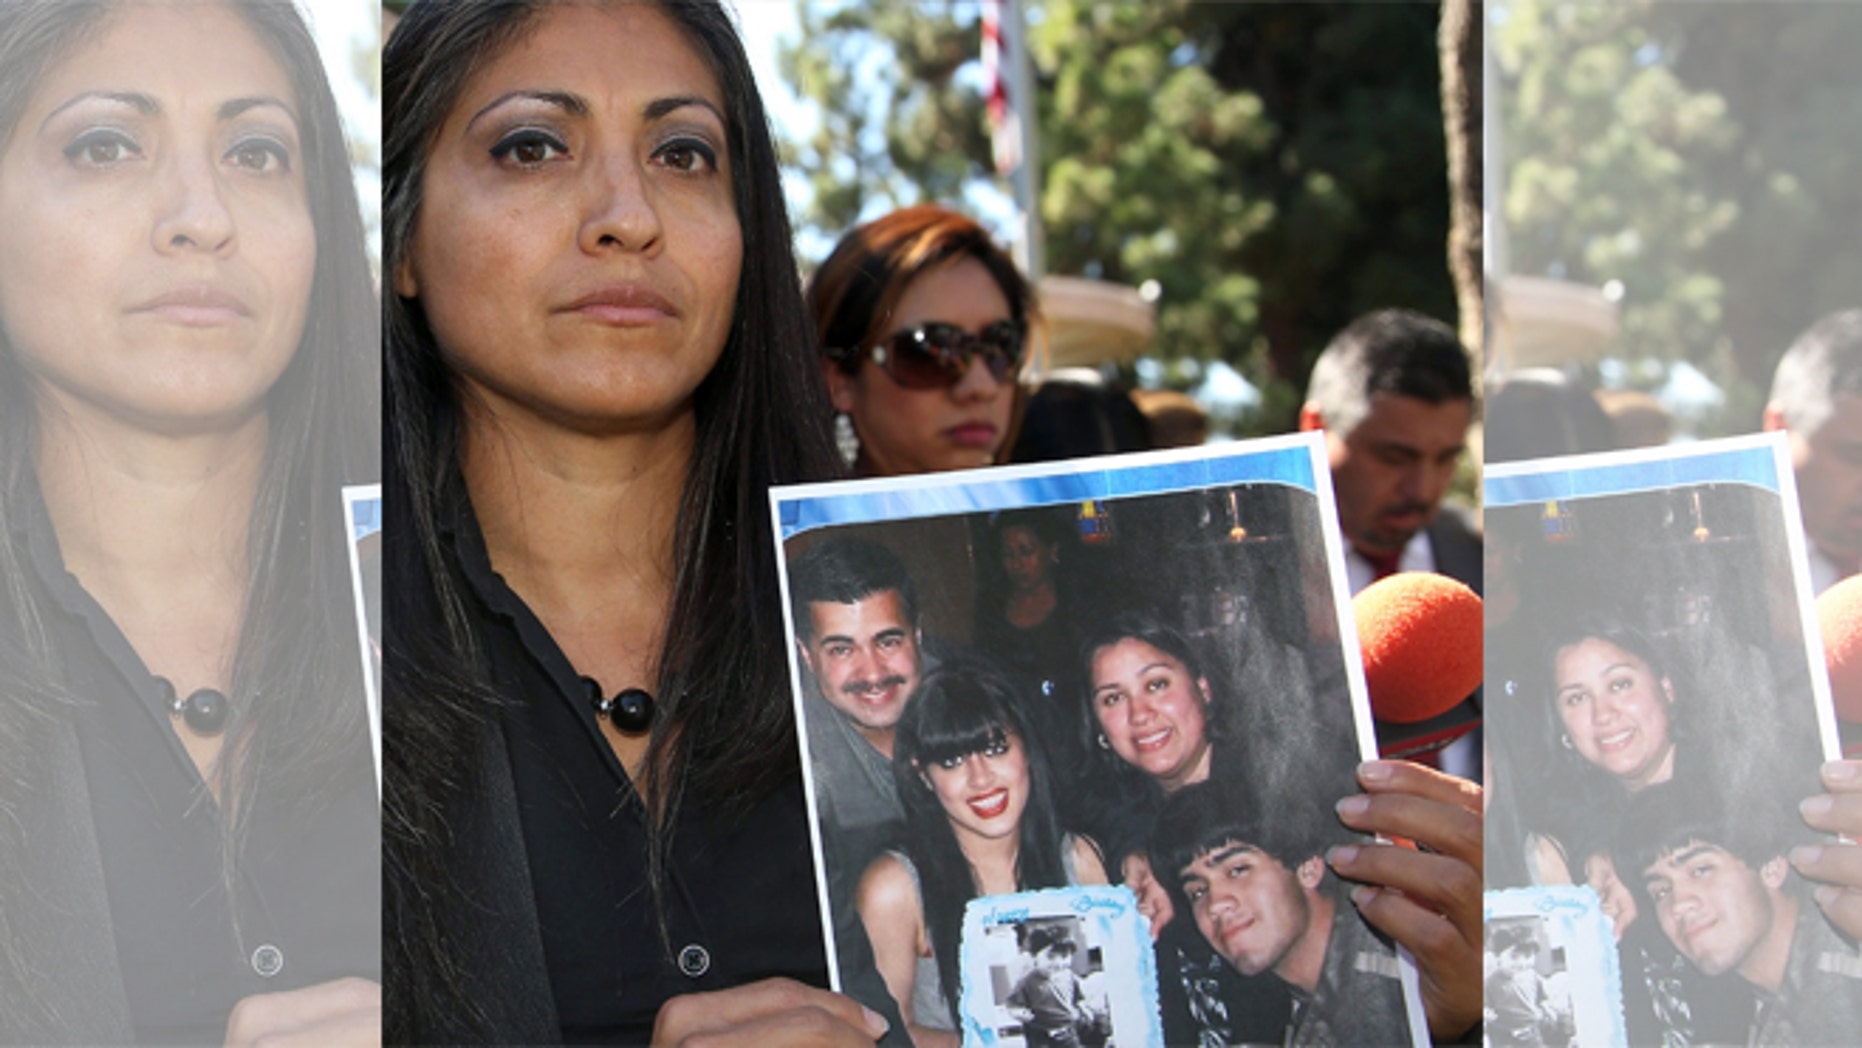 FILE - In this Oct. 2, 2014 file photo, attorney Claudia Osuna holds a photo of the Crespo family - from top left to bottom right, Bell Gardens, Calif., Mayor Daniel Crespo, his daughter Crystal, his wife Lyvette and son Daniel Crespo Jr., during a news conference in the Los Angeles surbuban city of Bell Gardens. A Los Angeles County grand jury has indicted Lyvette Crespo on a charge of voluntary manslaughter the shooting death of Daniel Crespo. The district attorneyâs office says Lyvette Crespo pleaded not guilty Thursday, April 23, 2015, during an arraignment at which the indictment was unsealed. The 45 year-old mayor was fatally shot at his home on Sept. 30, 2014. (AP Photo/Nick Ut, File)